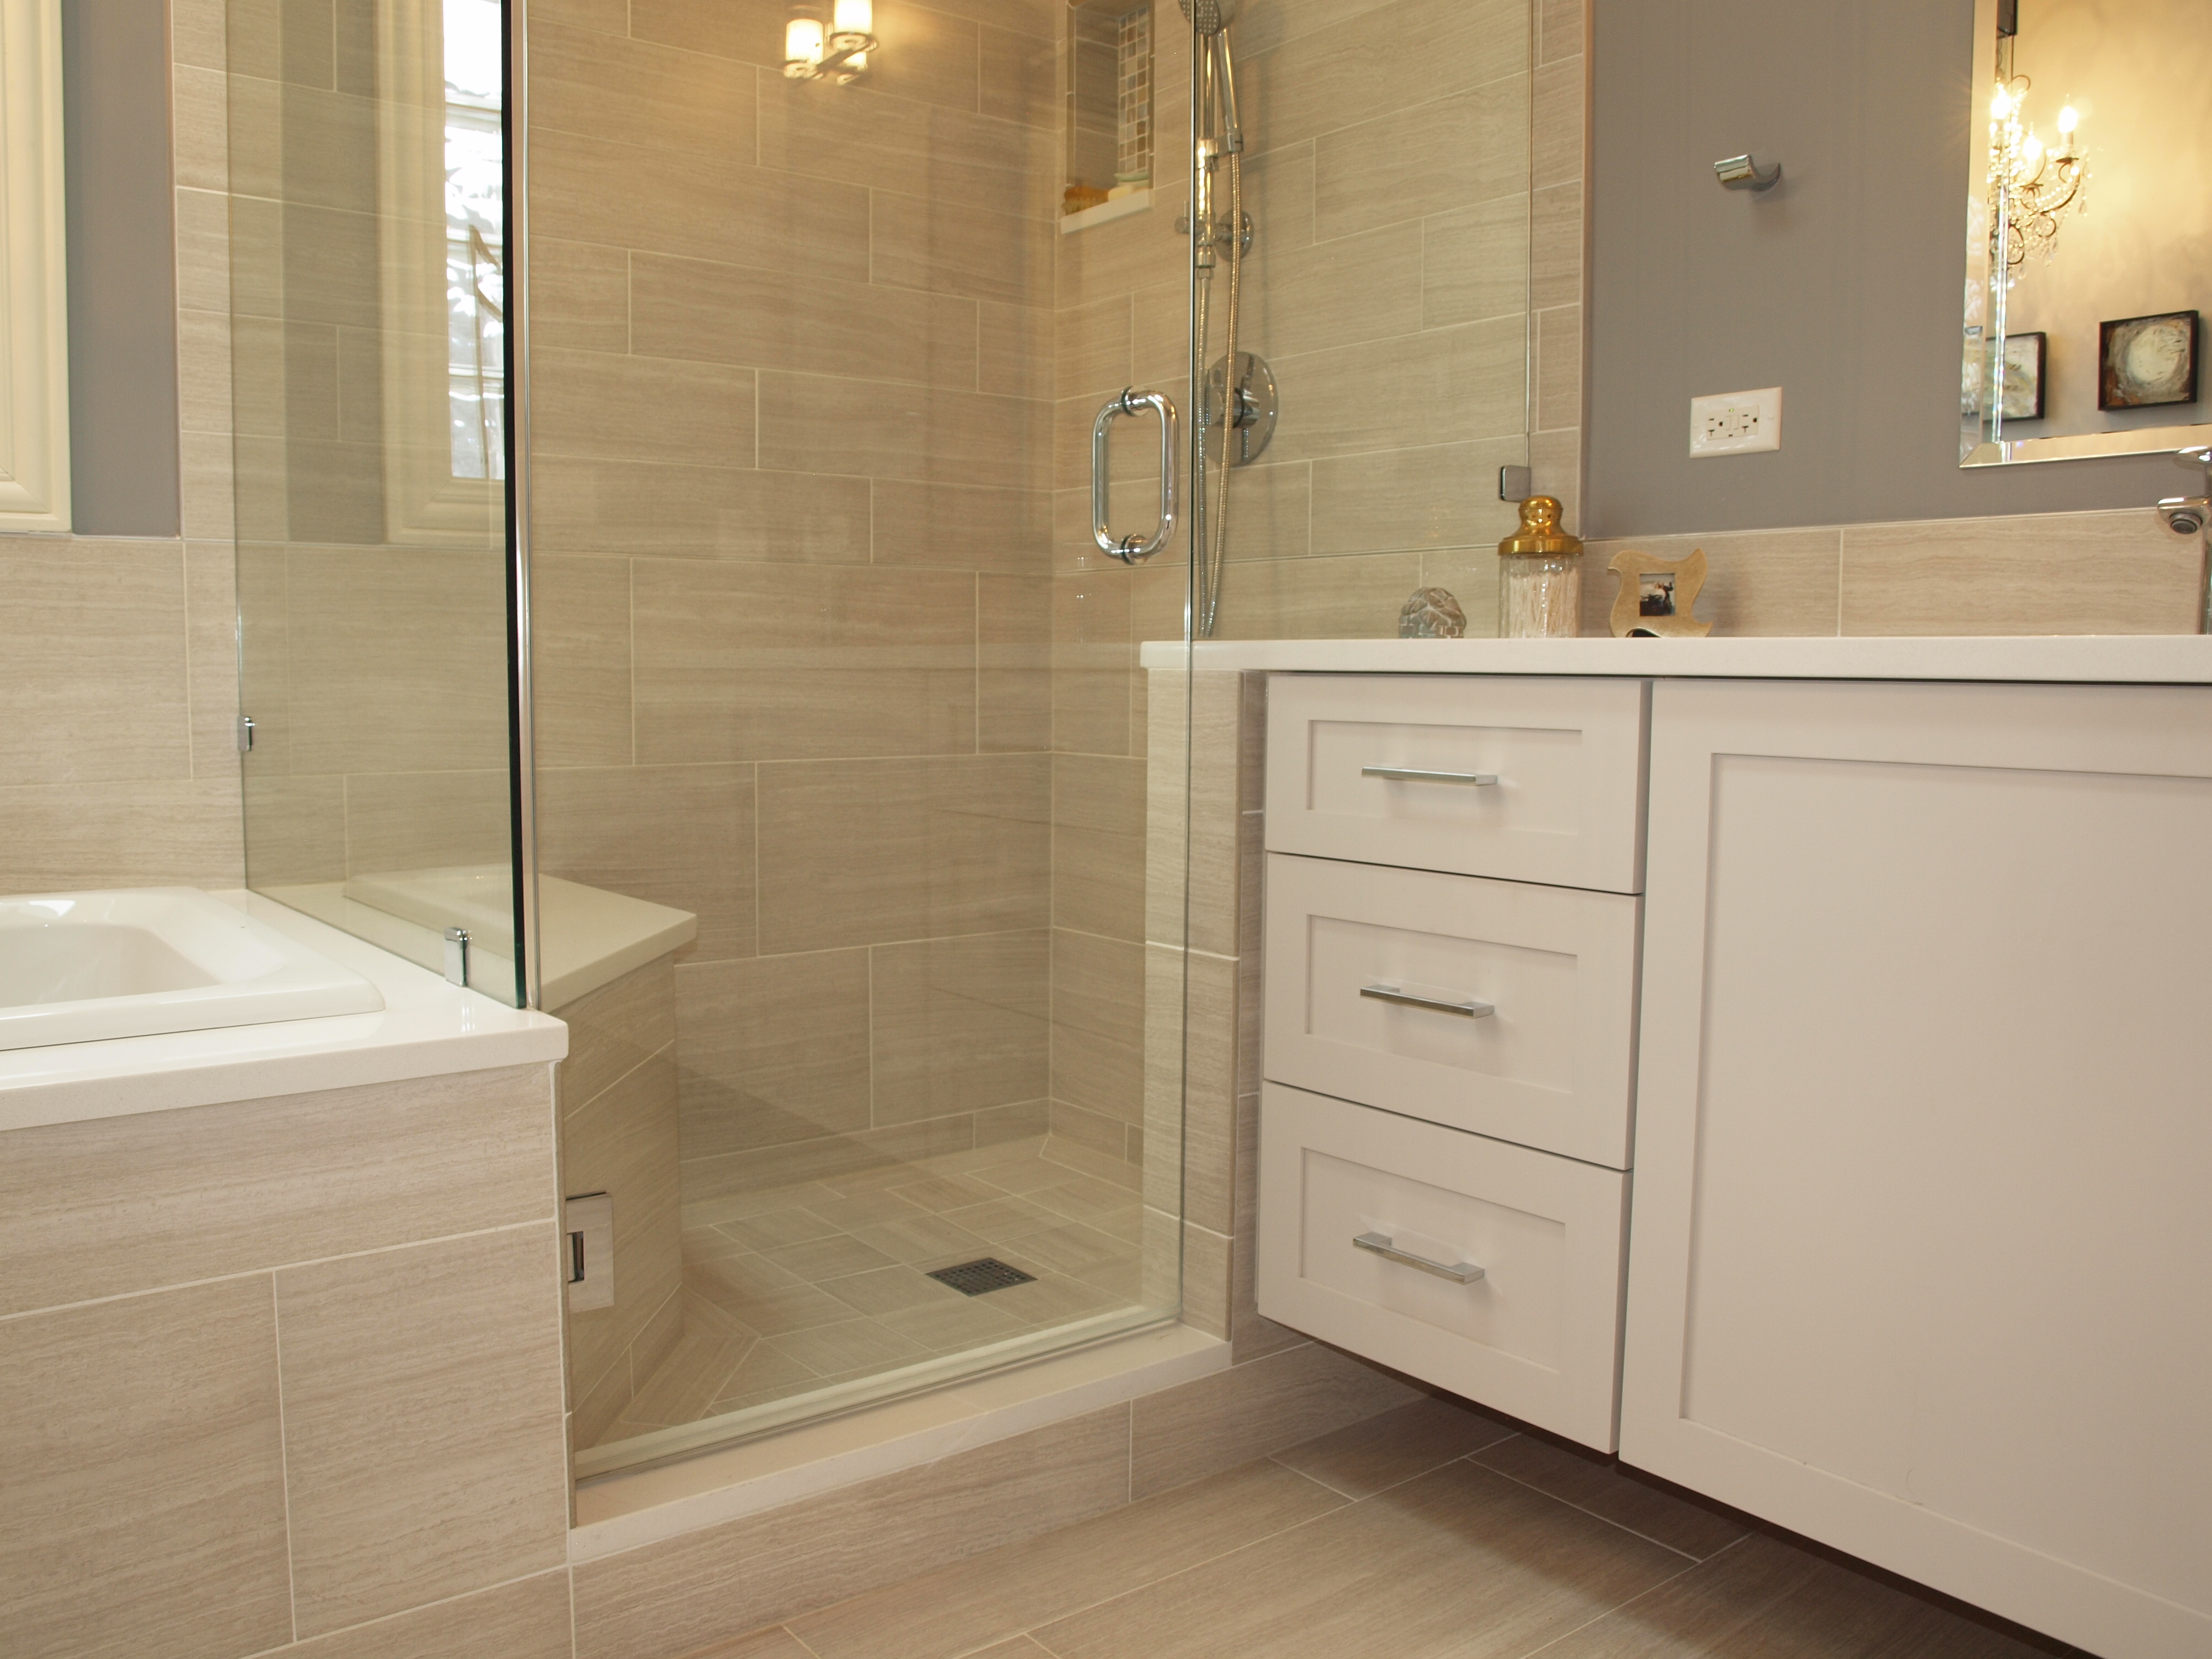 Bathroom Remodeling Idea Integrated Bathtub And Shower Bench Normandy Remodeling